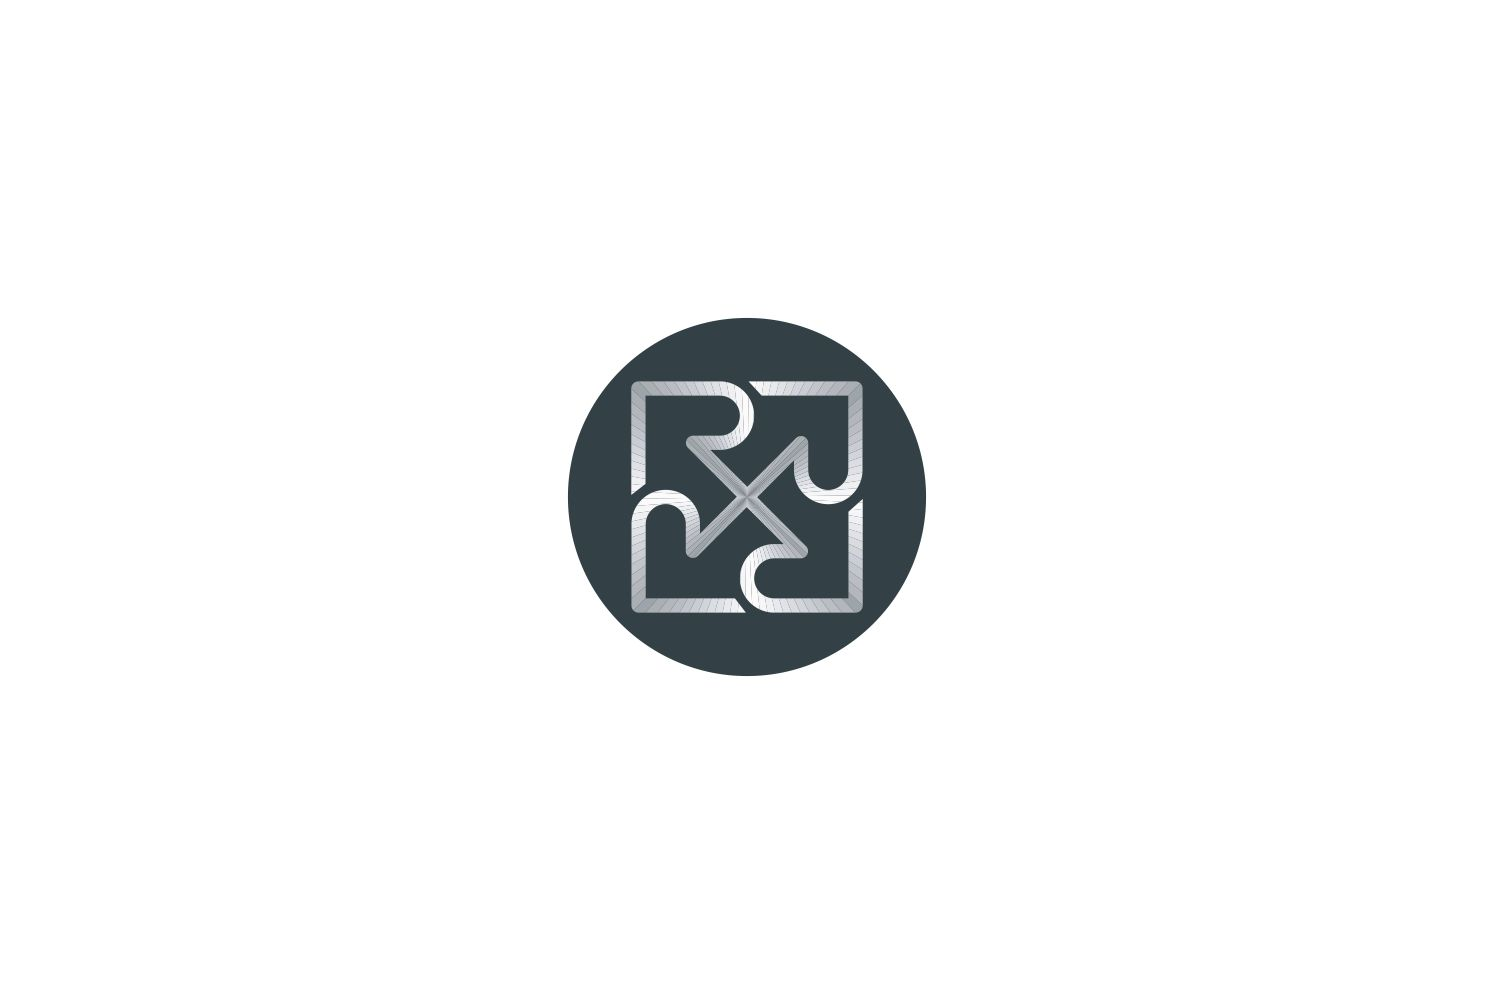 R Letter Logo Design Graphic By Bentang Tebe Creative Fabrica